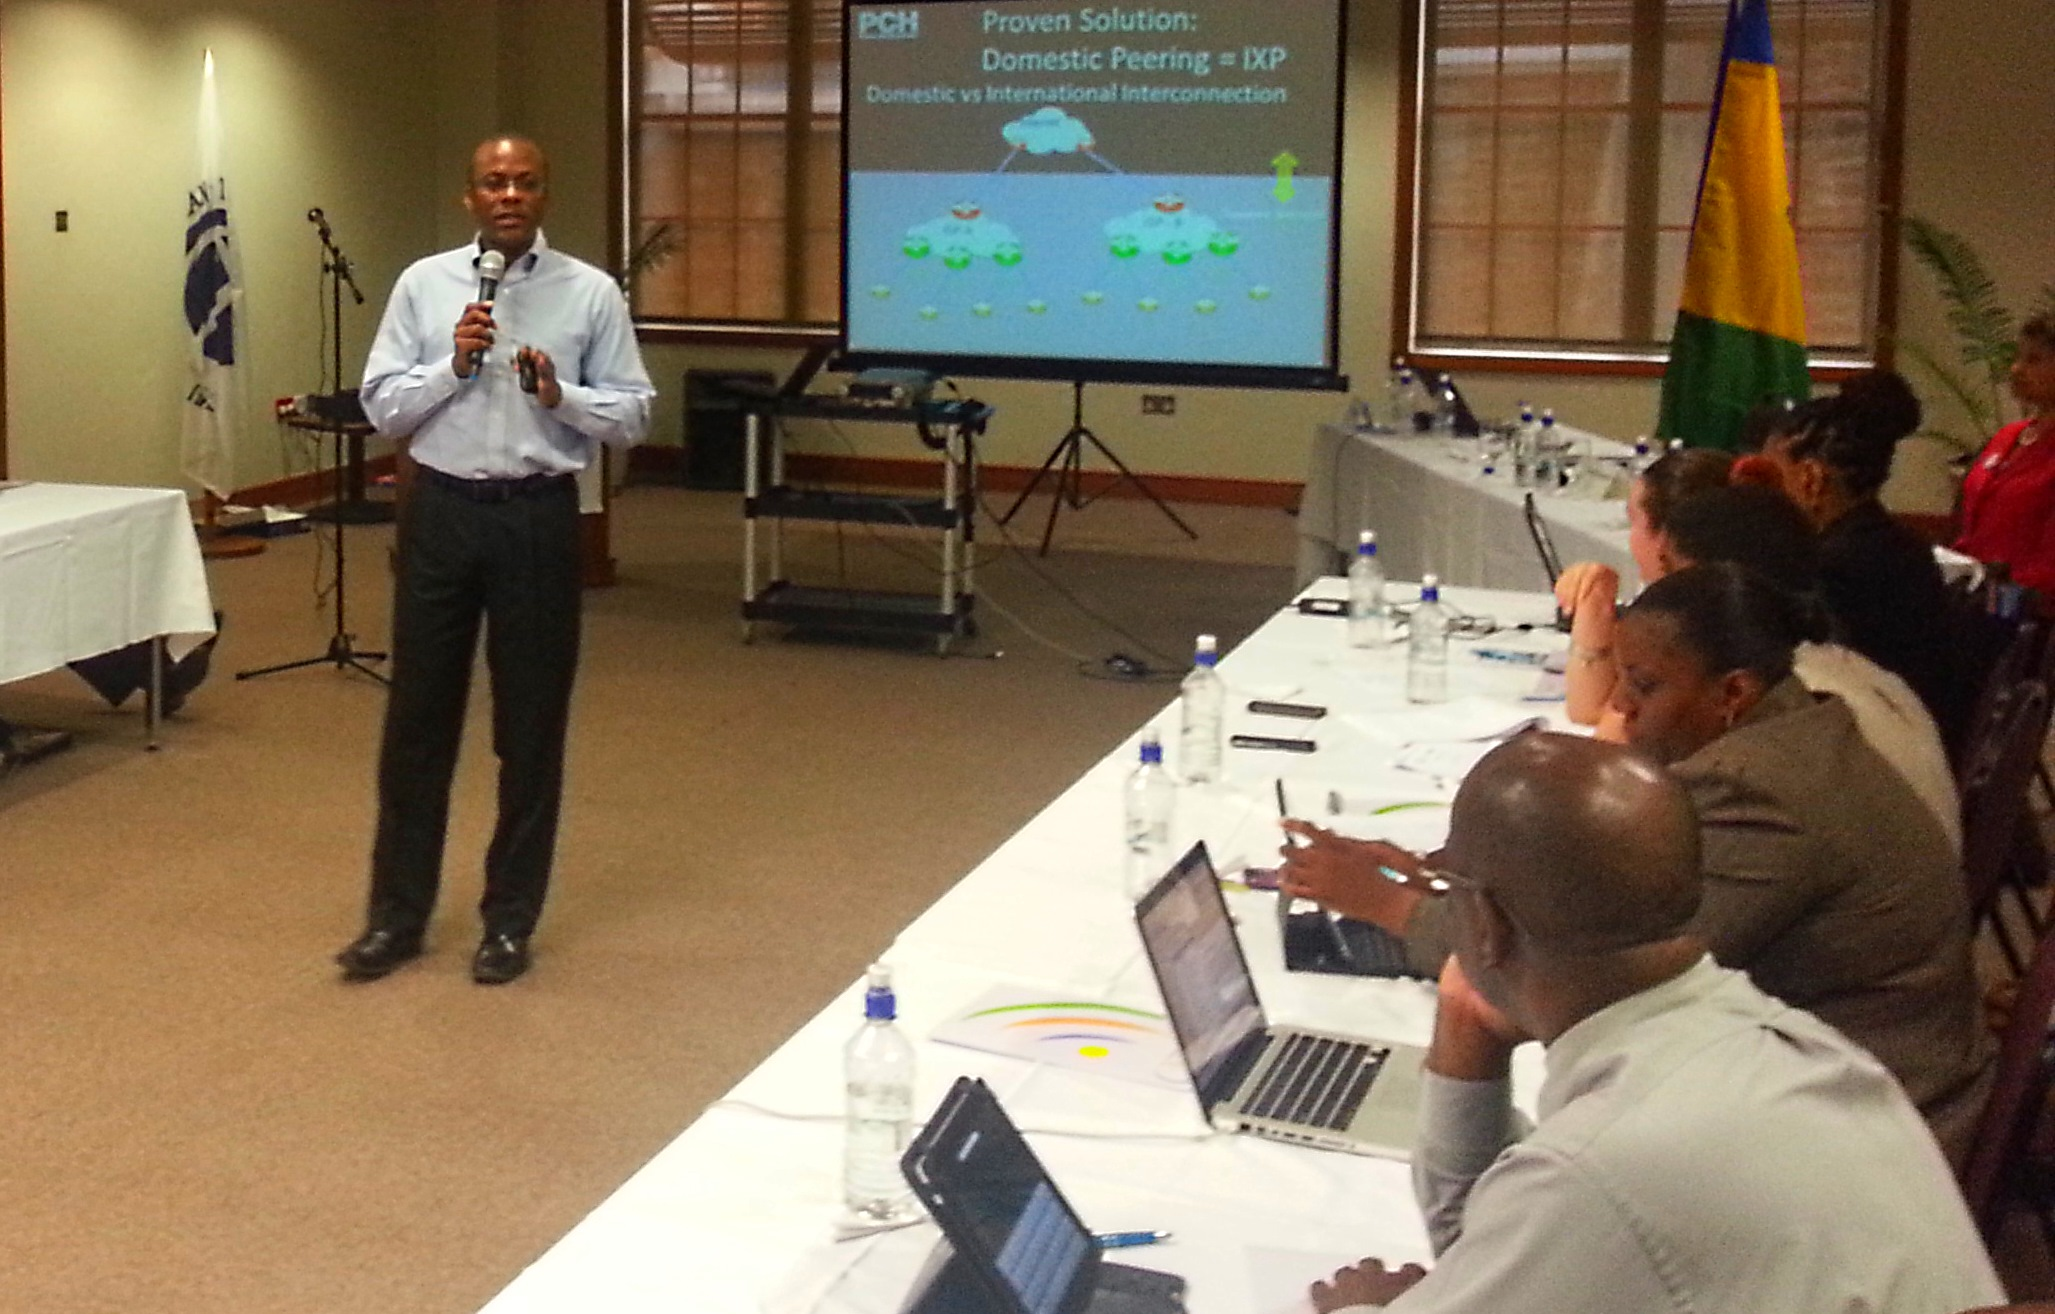 CAPTION: Bevil Wooding, Internet Strategist with Packet Clearing House, facilitates the Caribbean Telecommunications Union CARCIP workshop in St Vincent and the Grenadines.